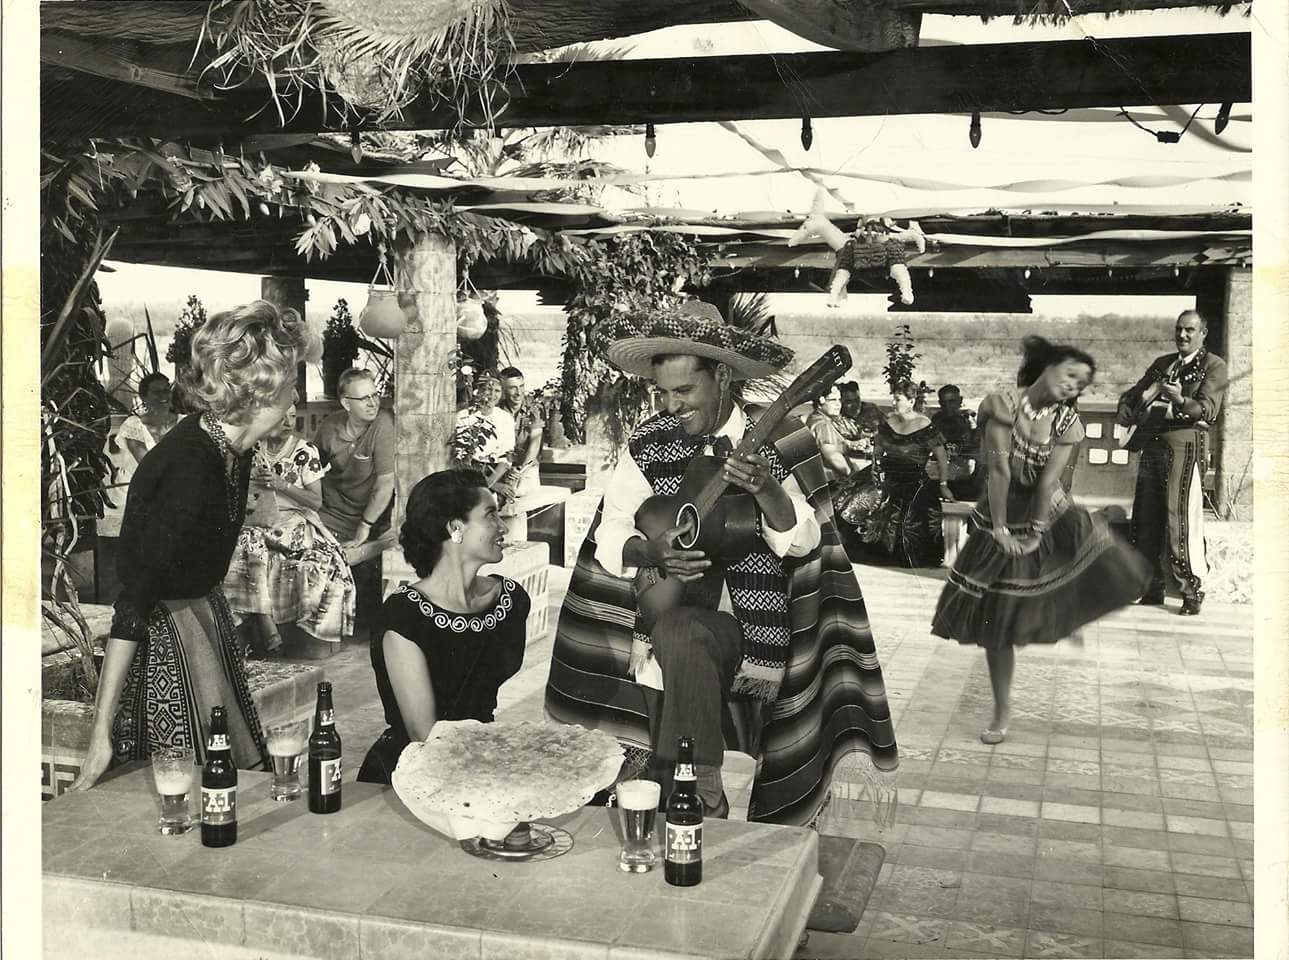 Karichimaka Restaurant in the 1960s